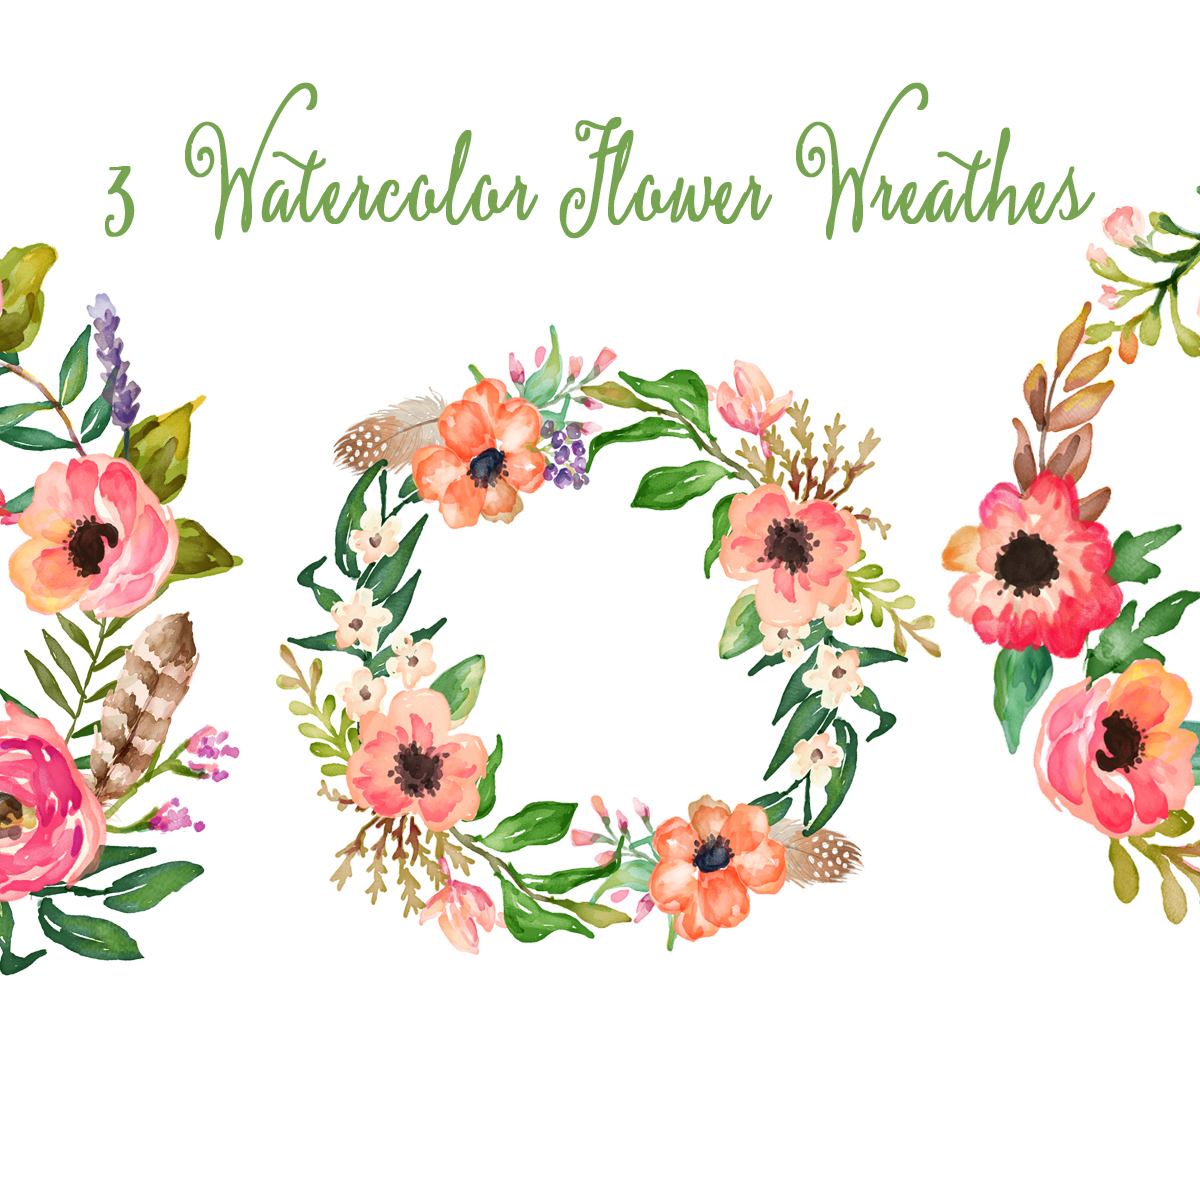 Floral images clipart jpg transparent stock Floral modern flower clipart kid - Clipartix jpg transparent stock